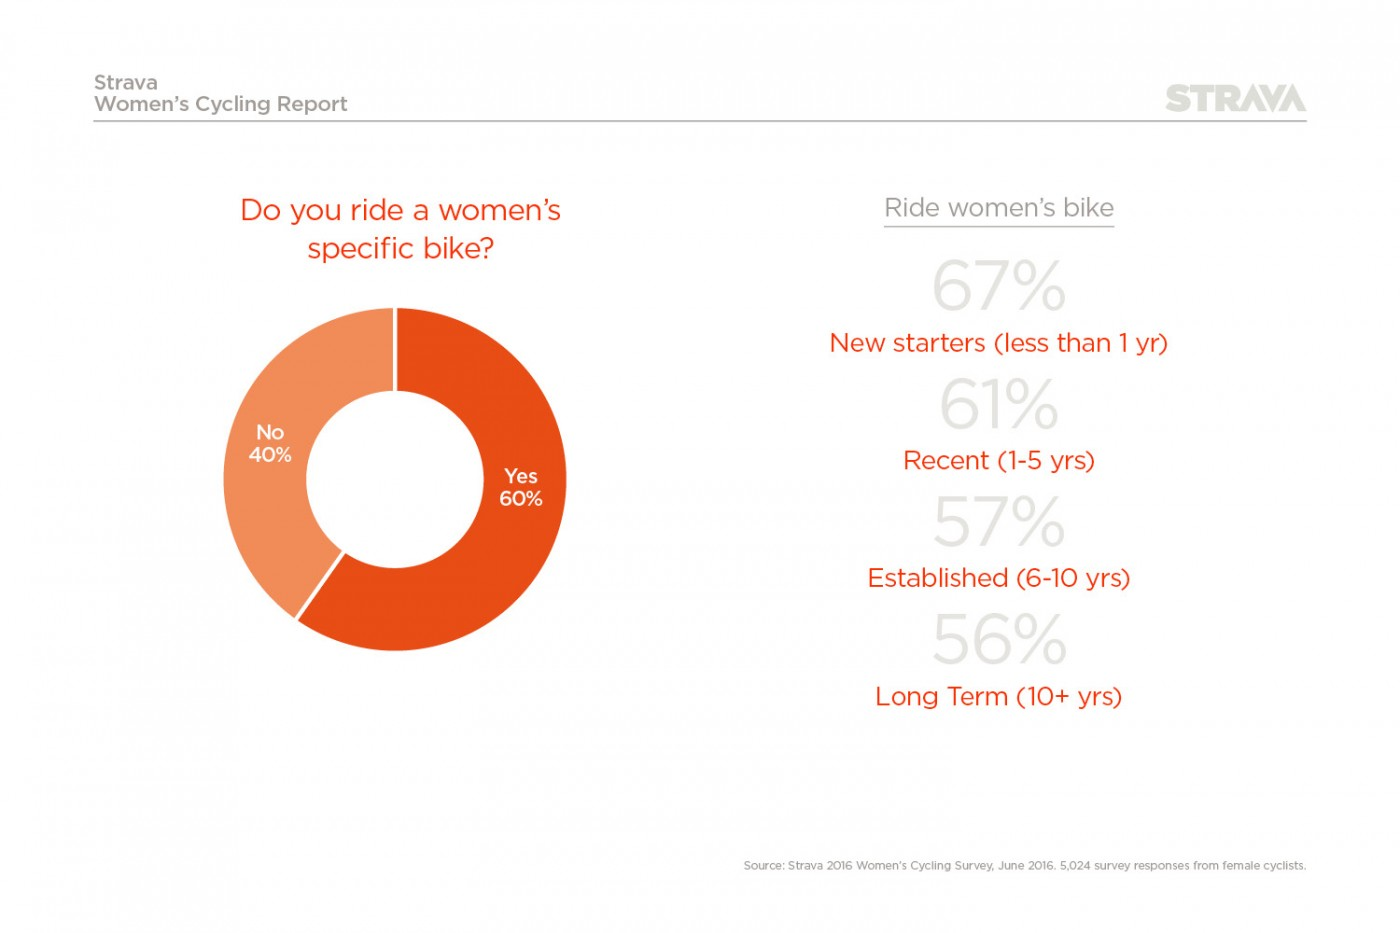 Type of bike ridden by women in the UK